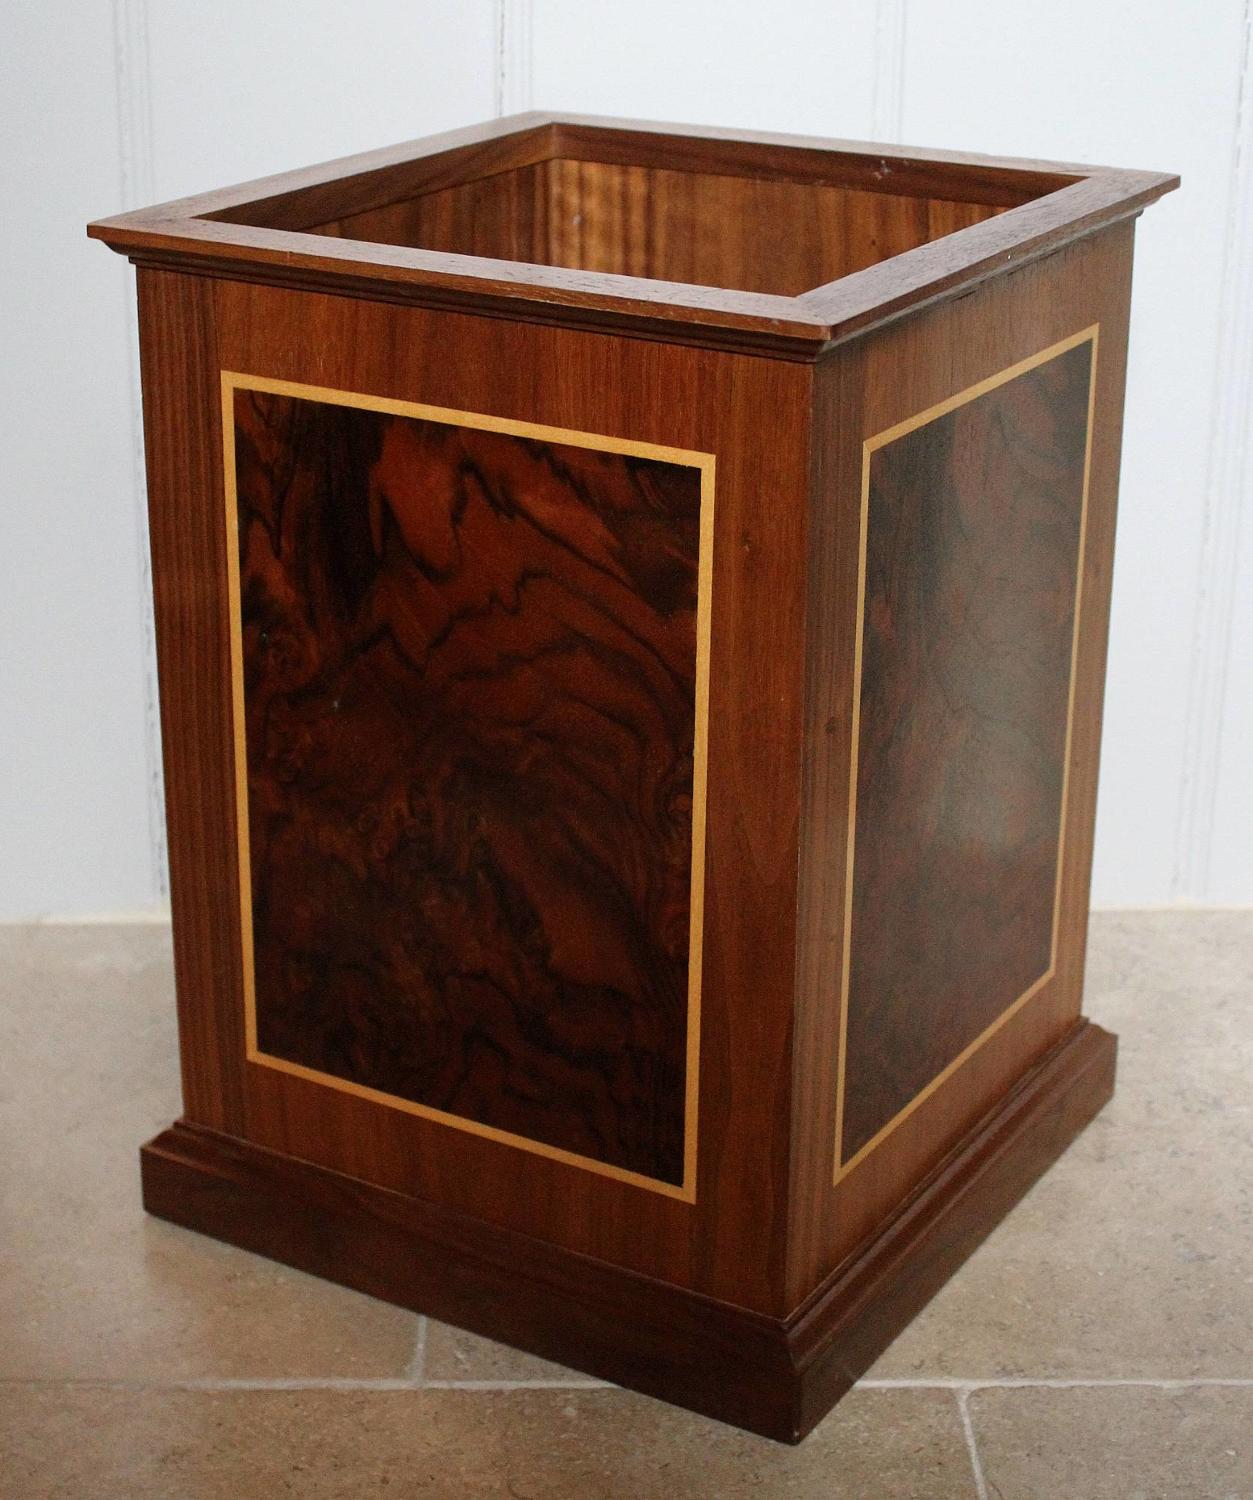 David Linley for Dunhill Marquetry Waste Paper Bin